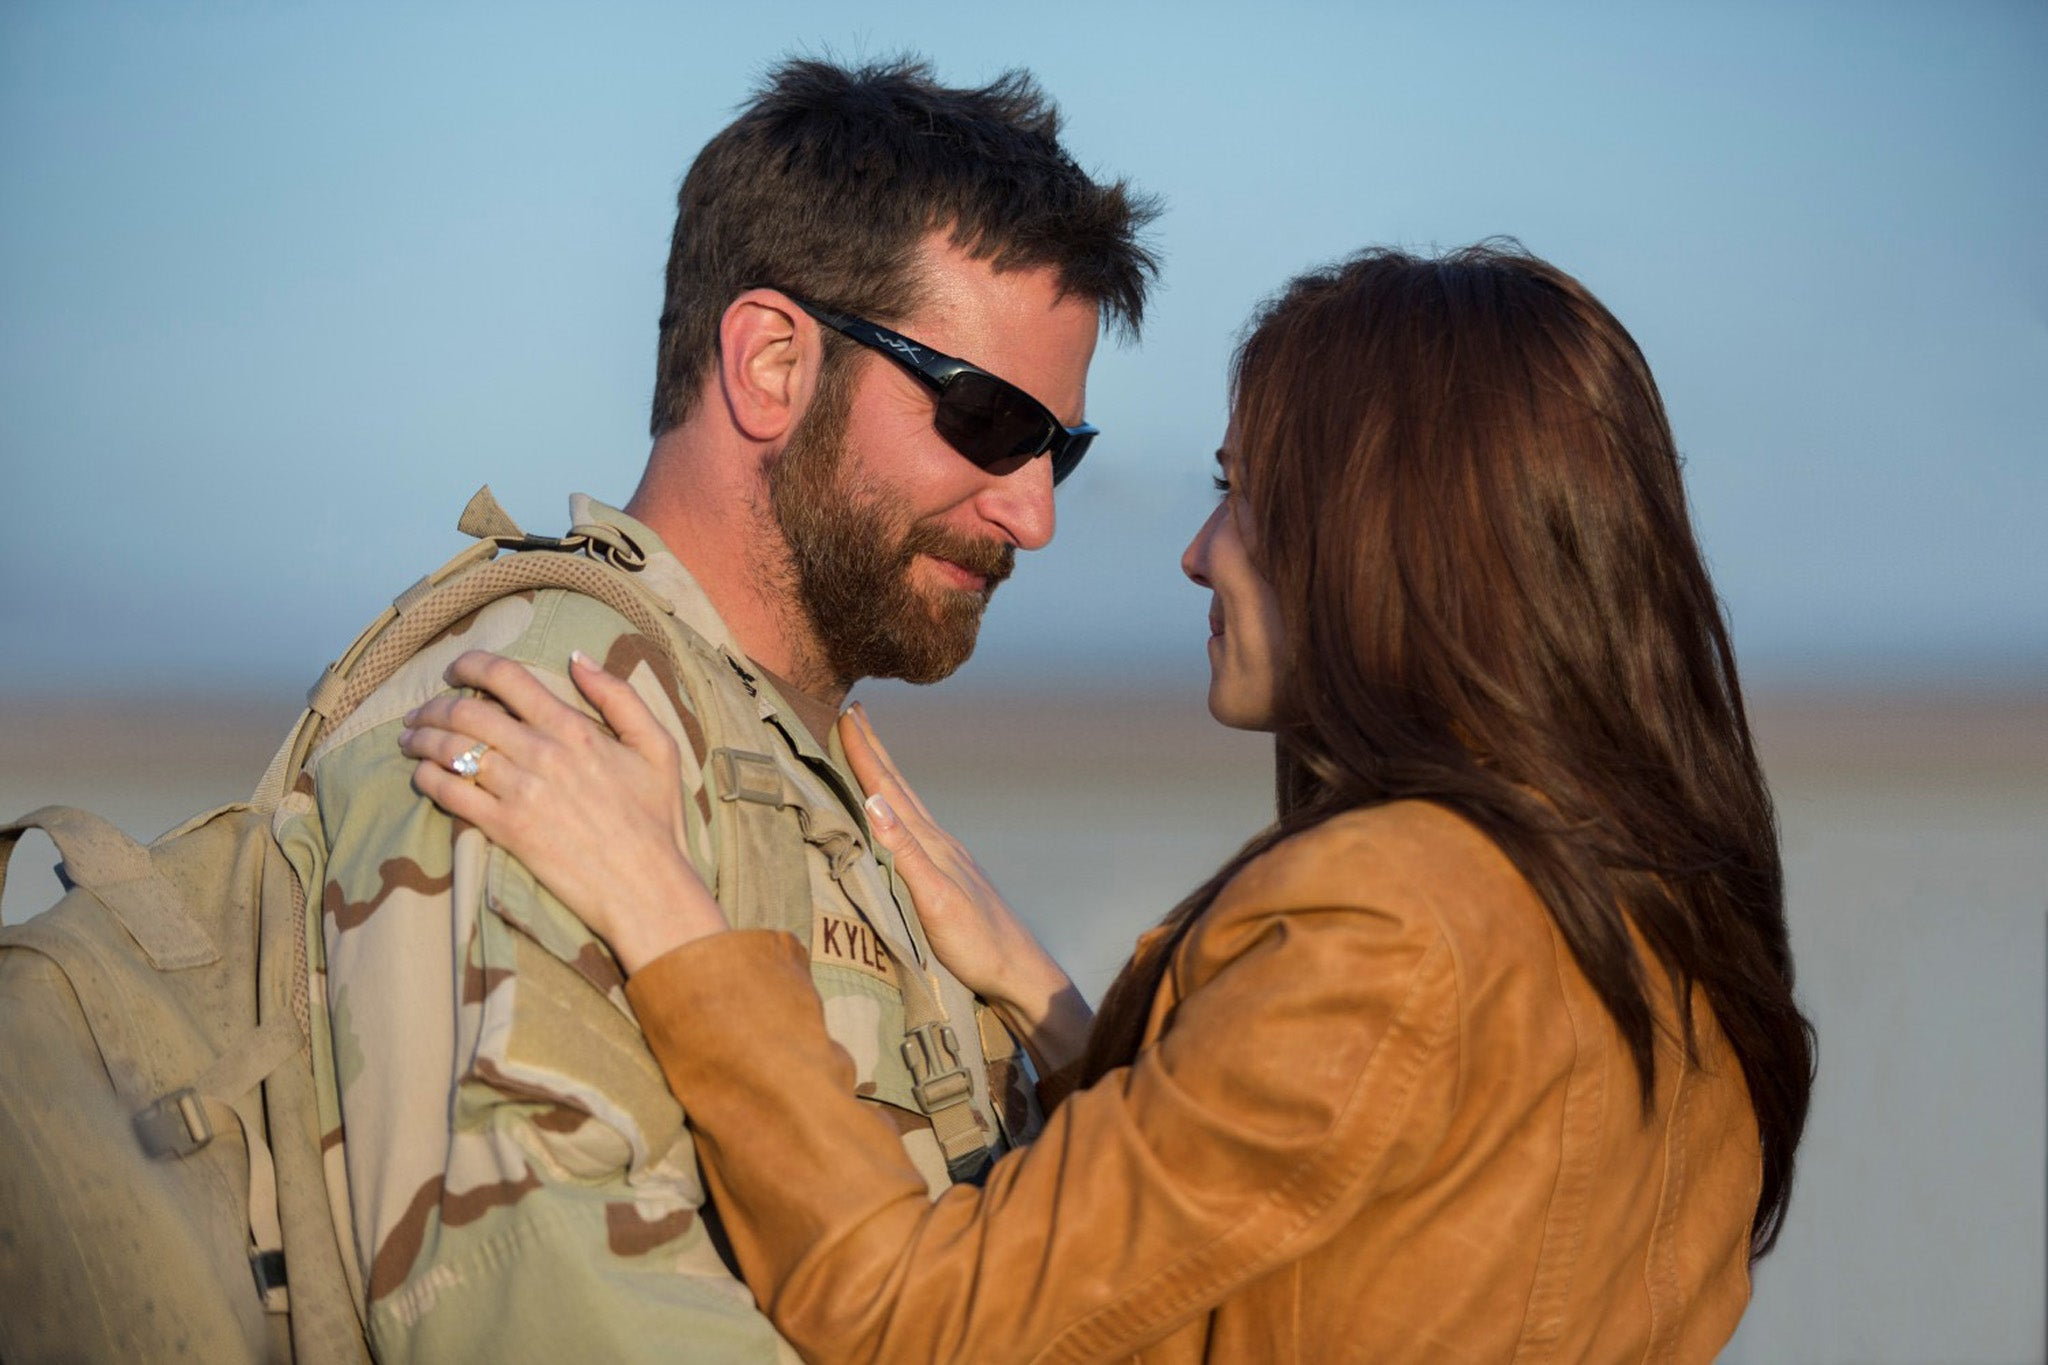 American Sniper original ending showing death of Chris Kyle cut at request of his widow